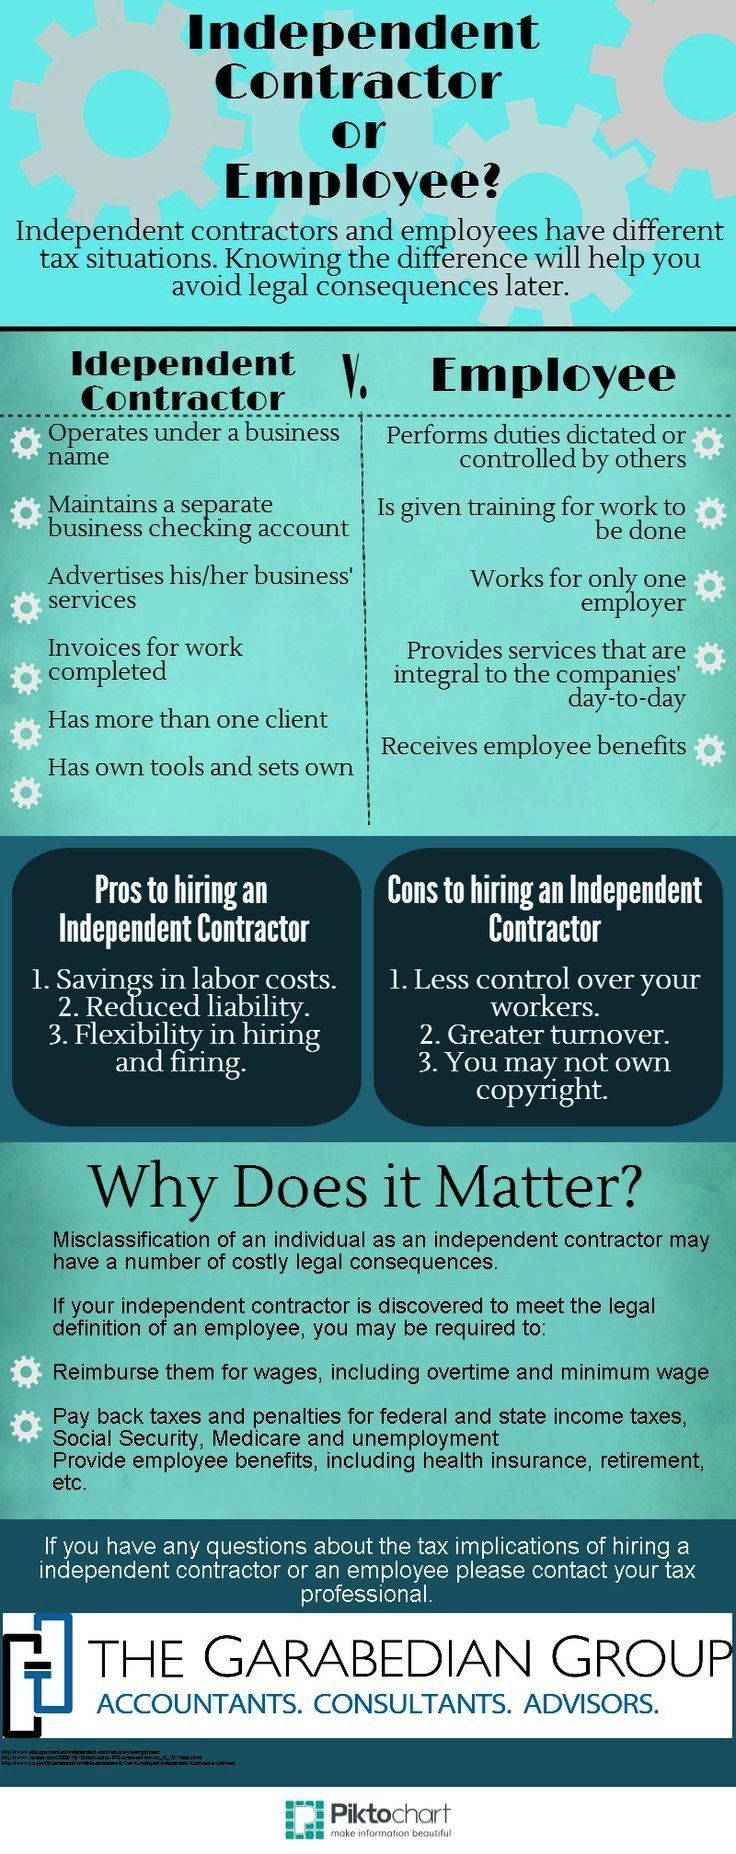 Independent Contractor Or Employee This Infographic From The